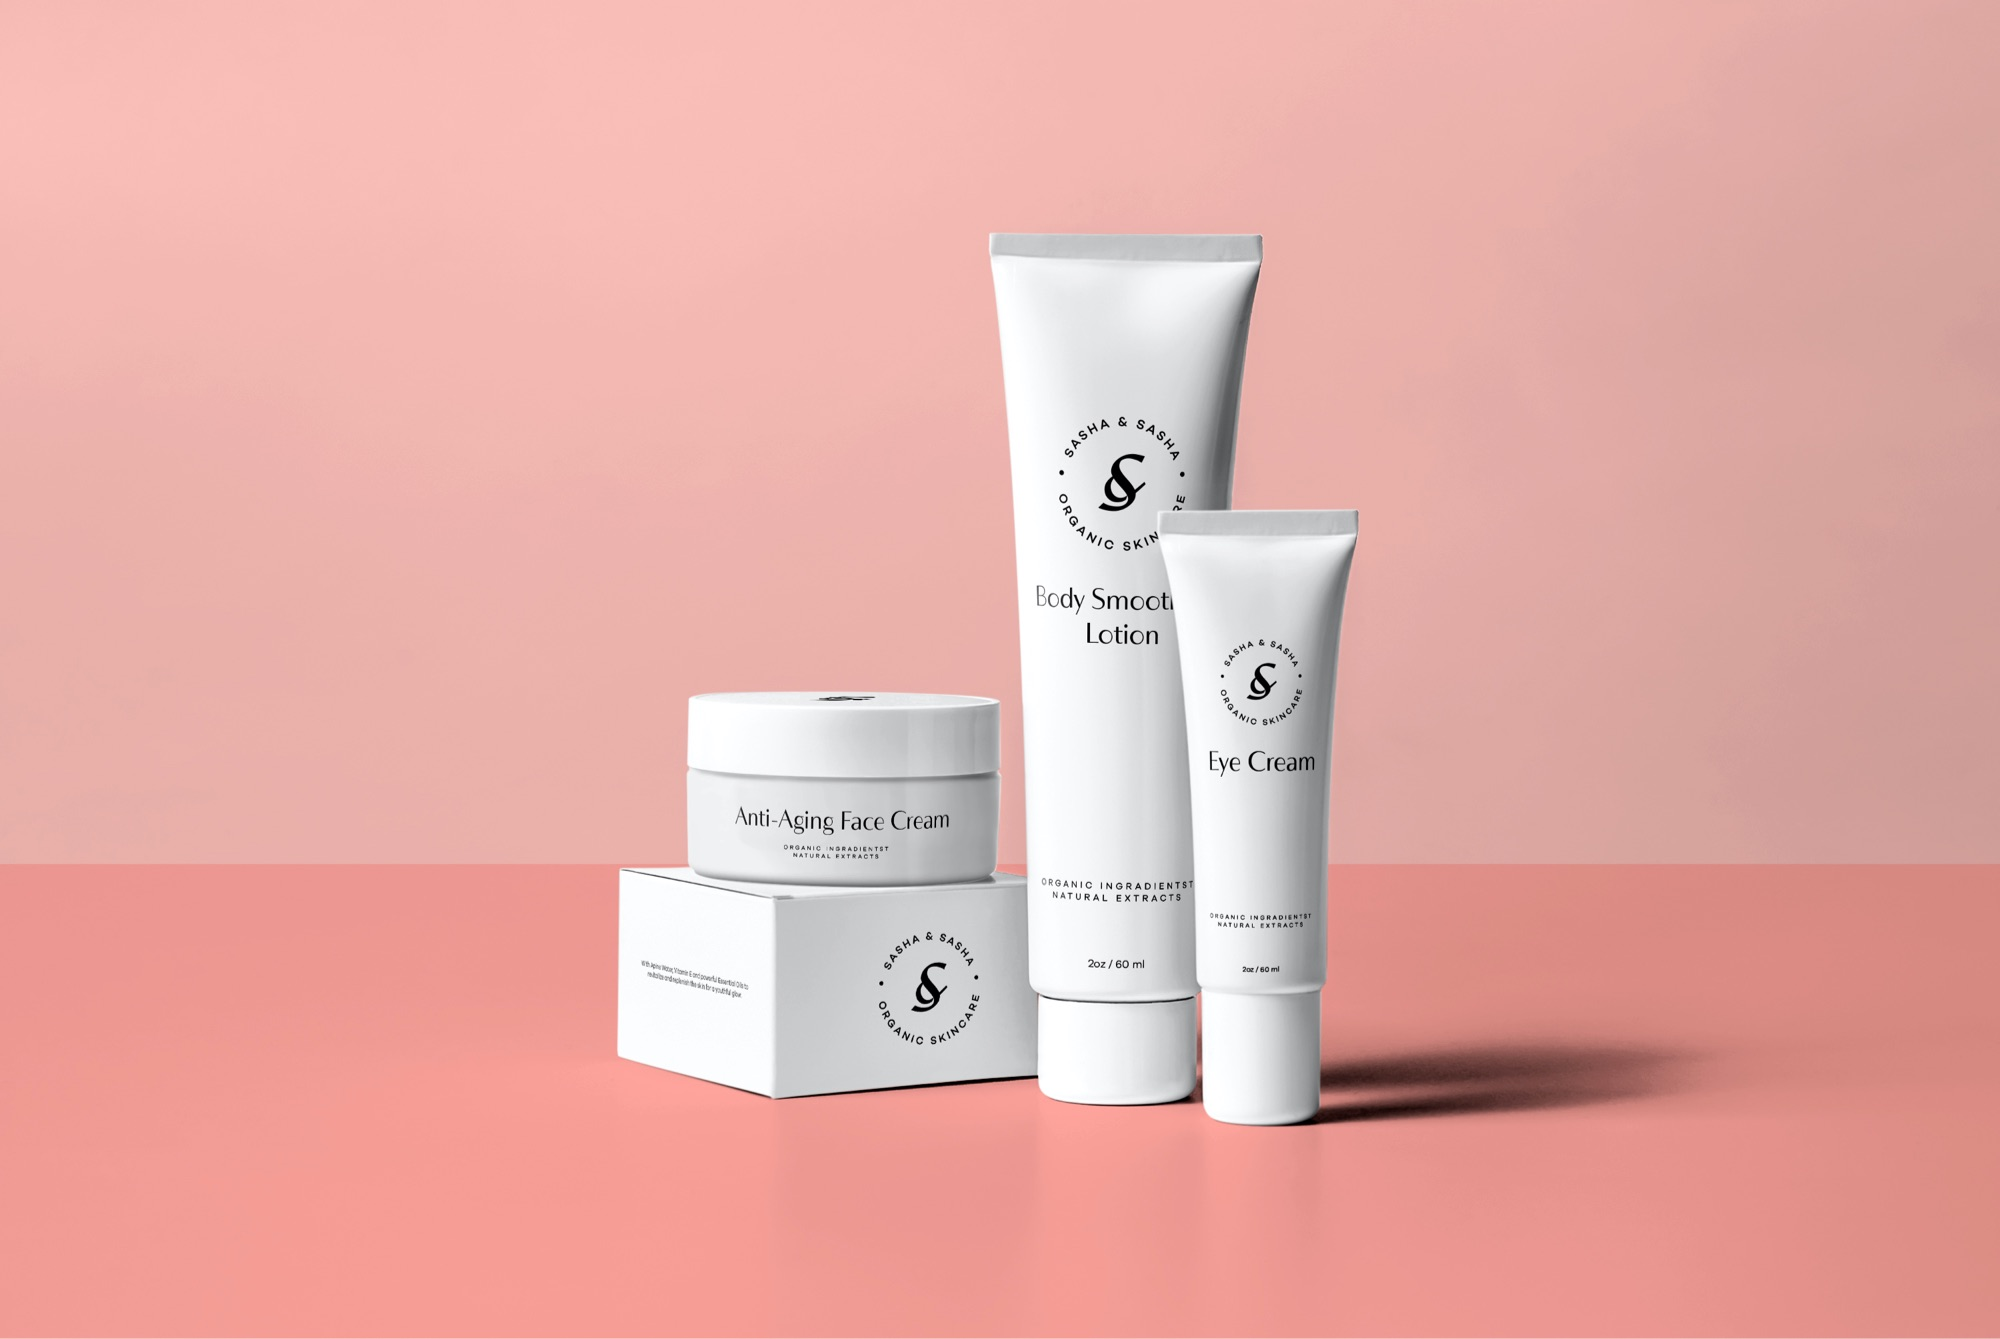 Product branding by 11thagency